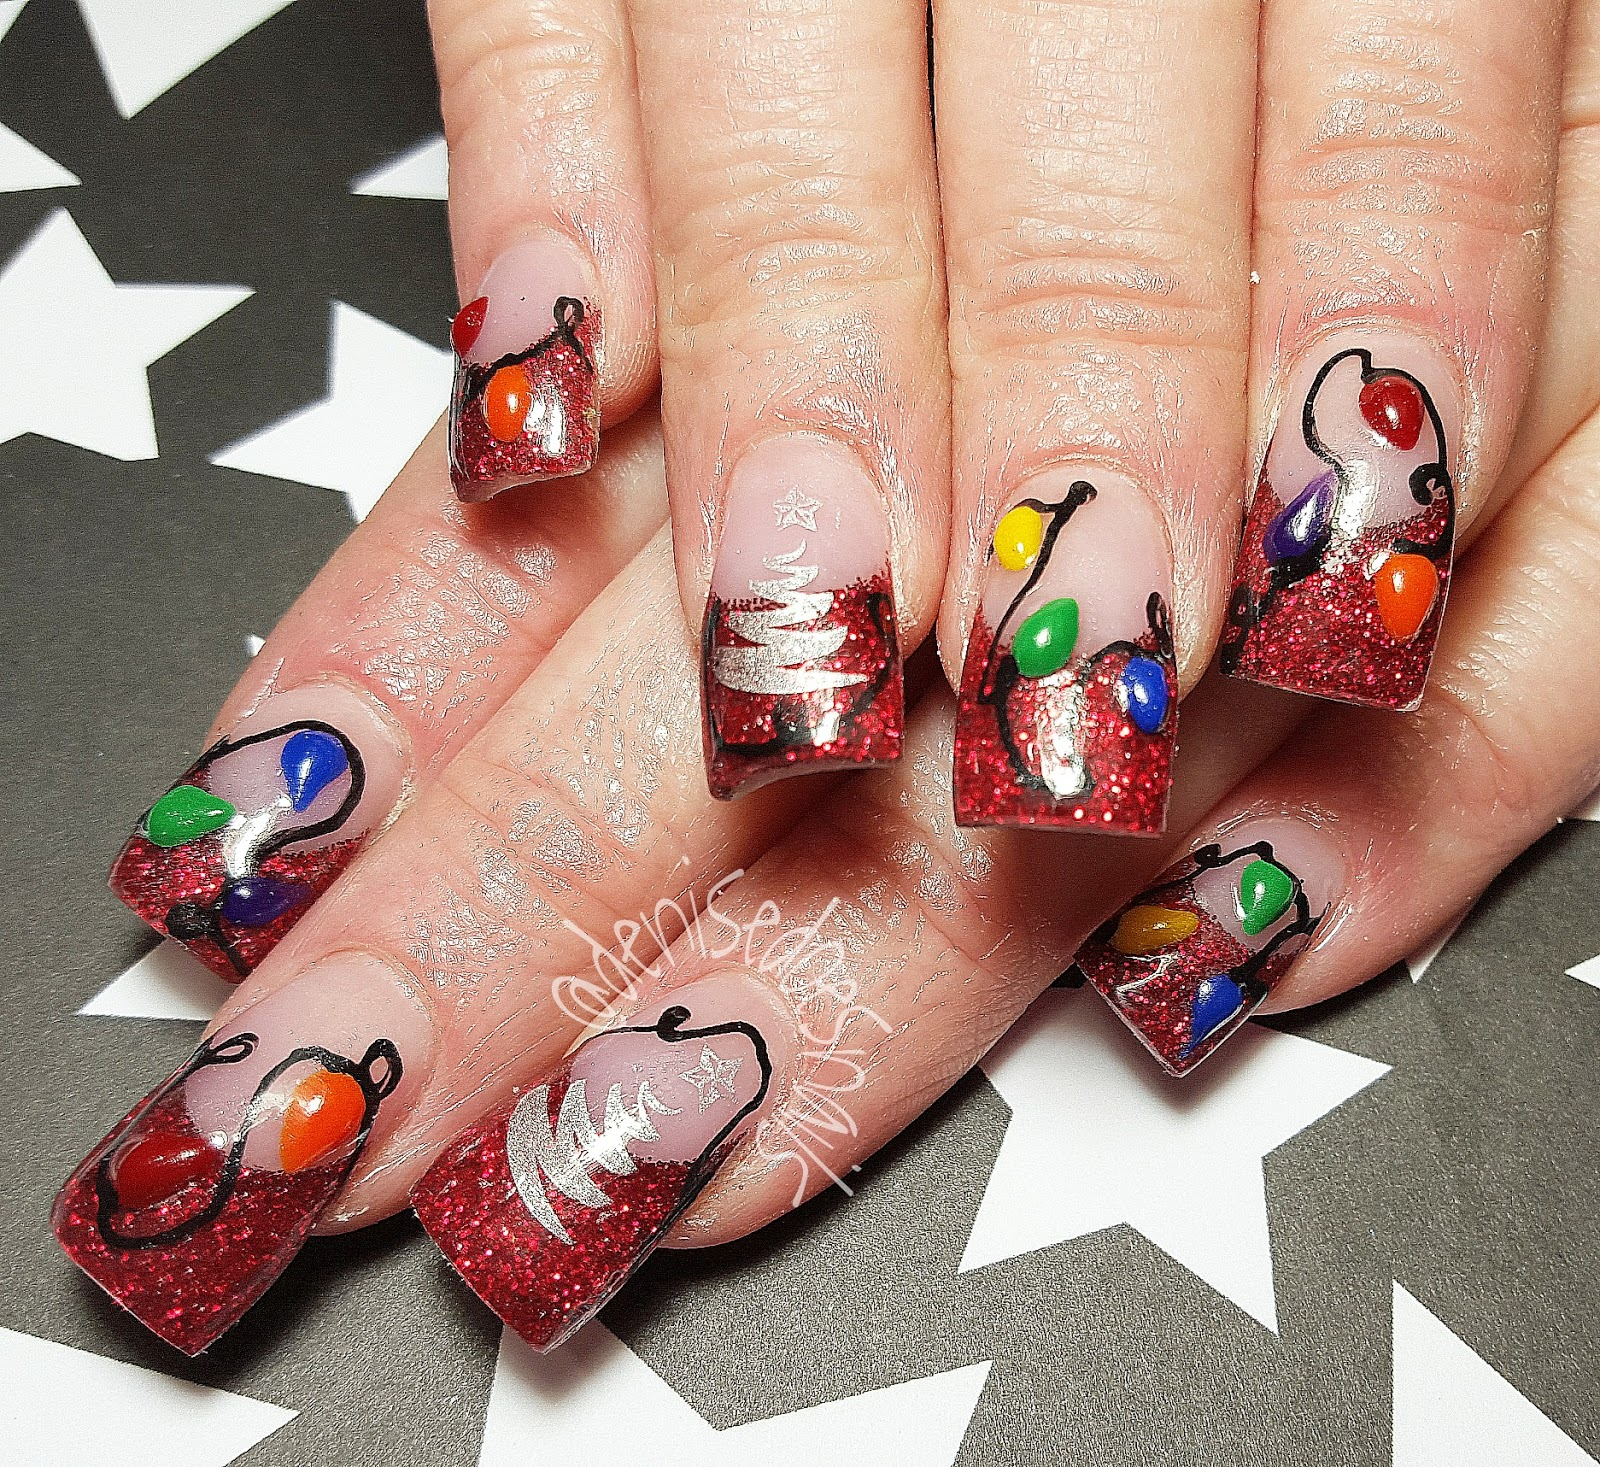 Christmas Lights Nails Pinterest: Nail Art By Denise Groves: Gettin' In The Christmas Spirit